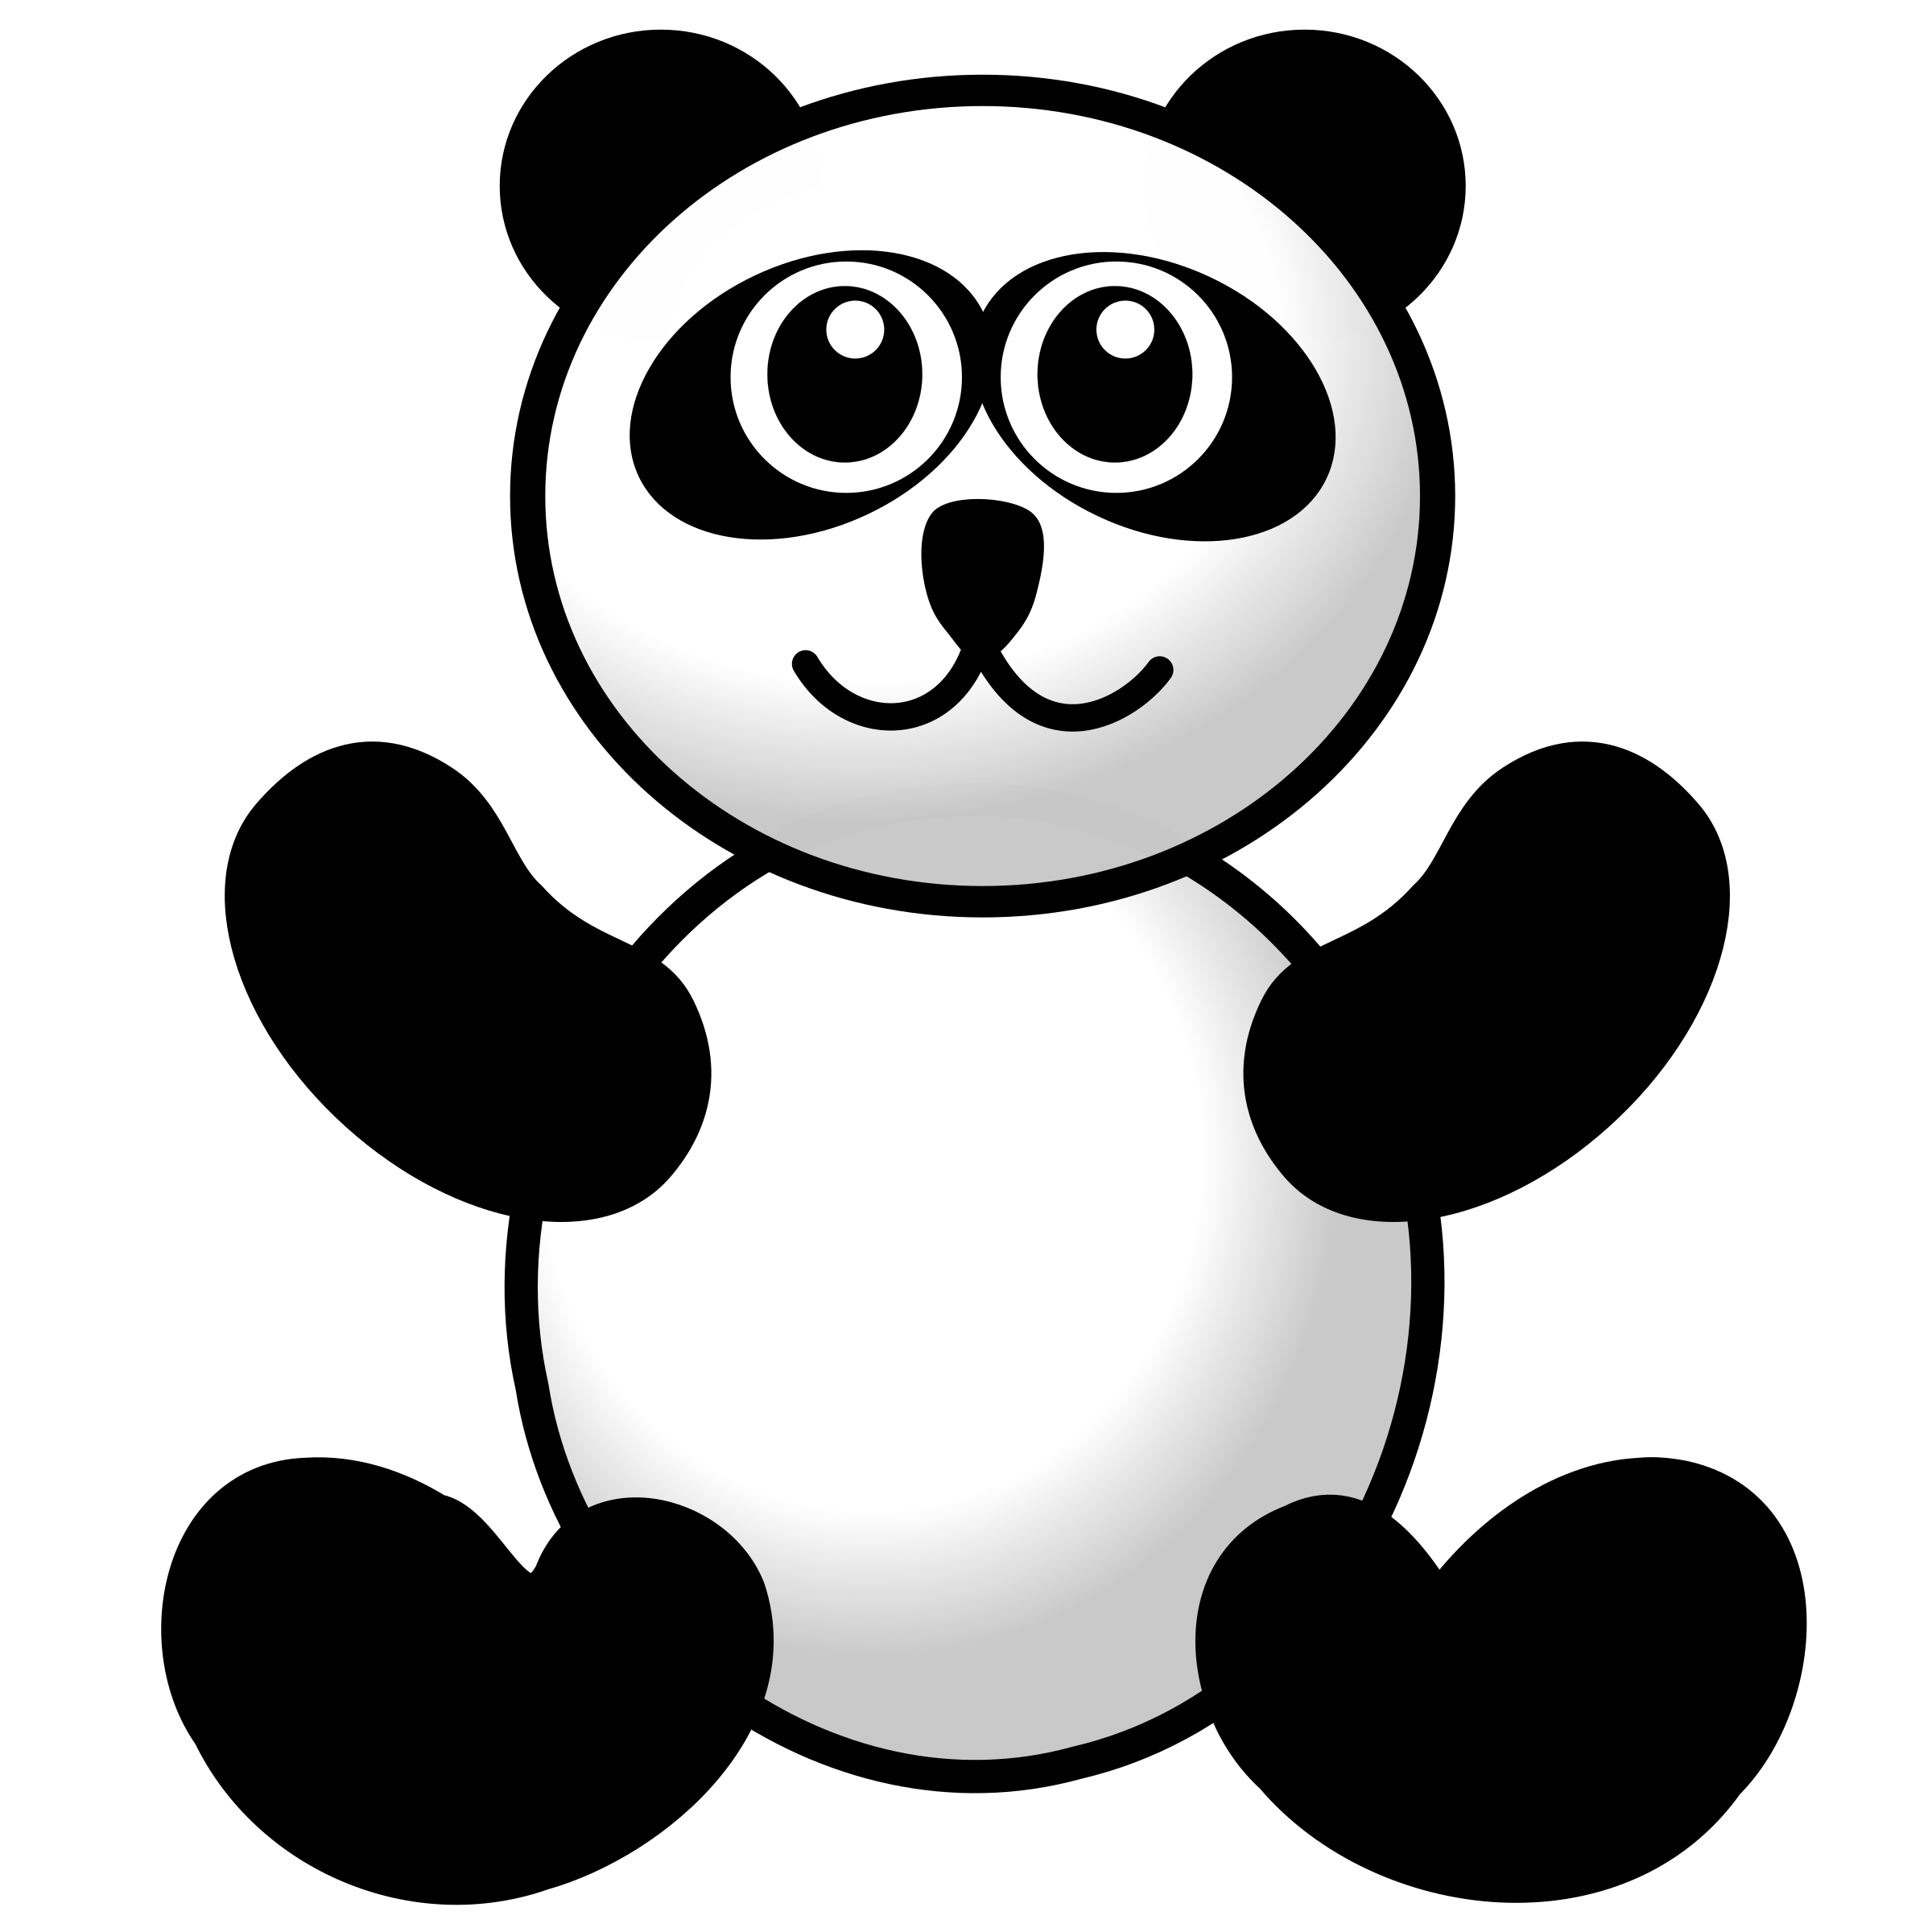 picture royalty free download Panda toy big image. Toys clipart